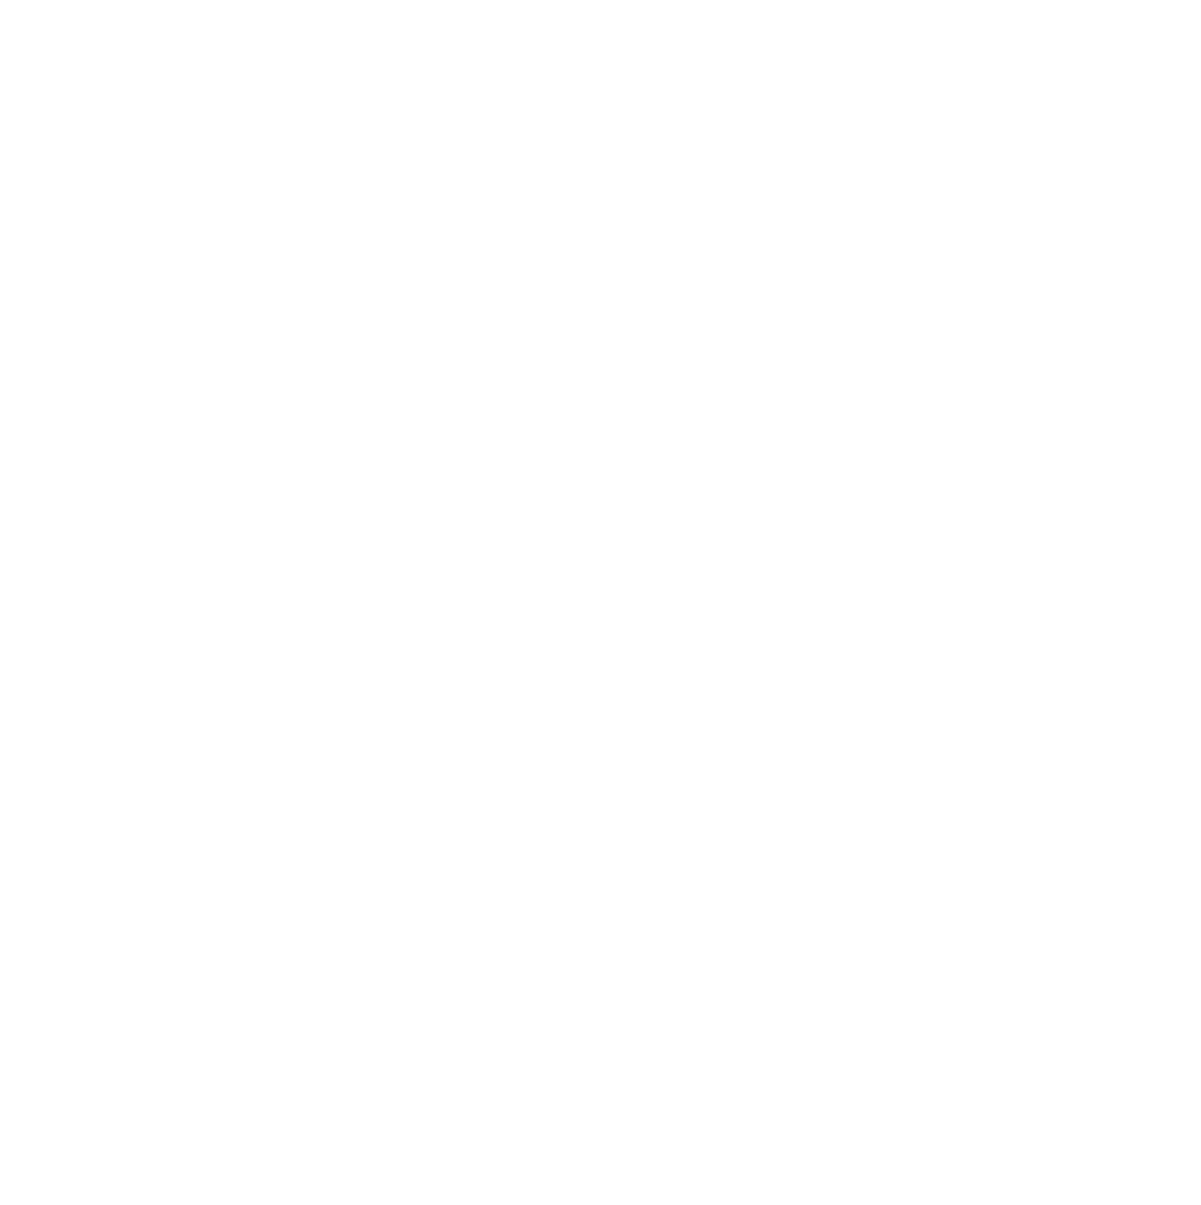 The Publishing Price Winner 2019